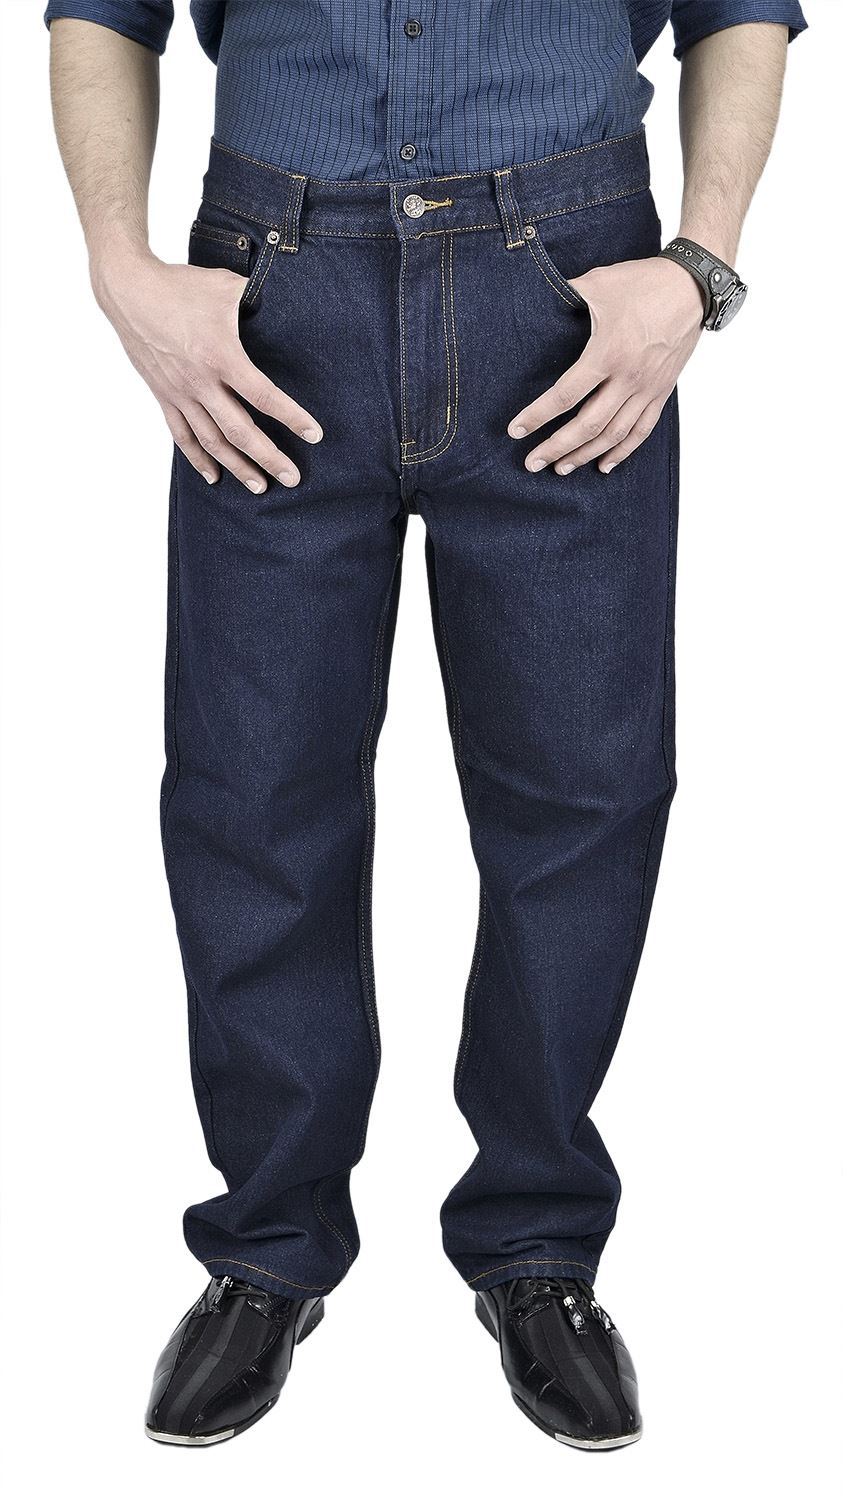 Moda Di Raza- Men's Basic Straight Leg Fit Zip Fly Jeans - Dark Blue/32x30